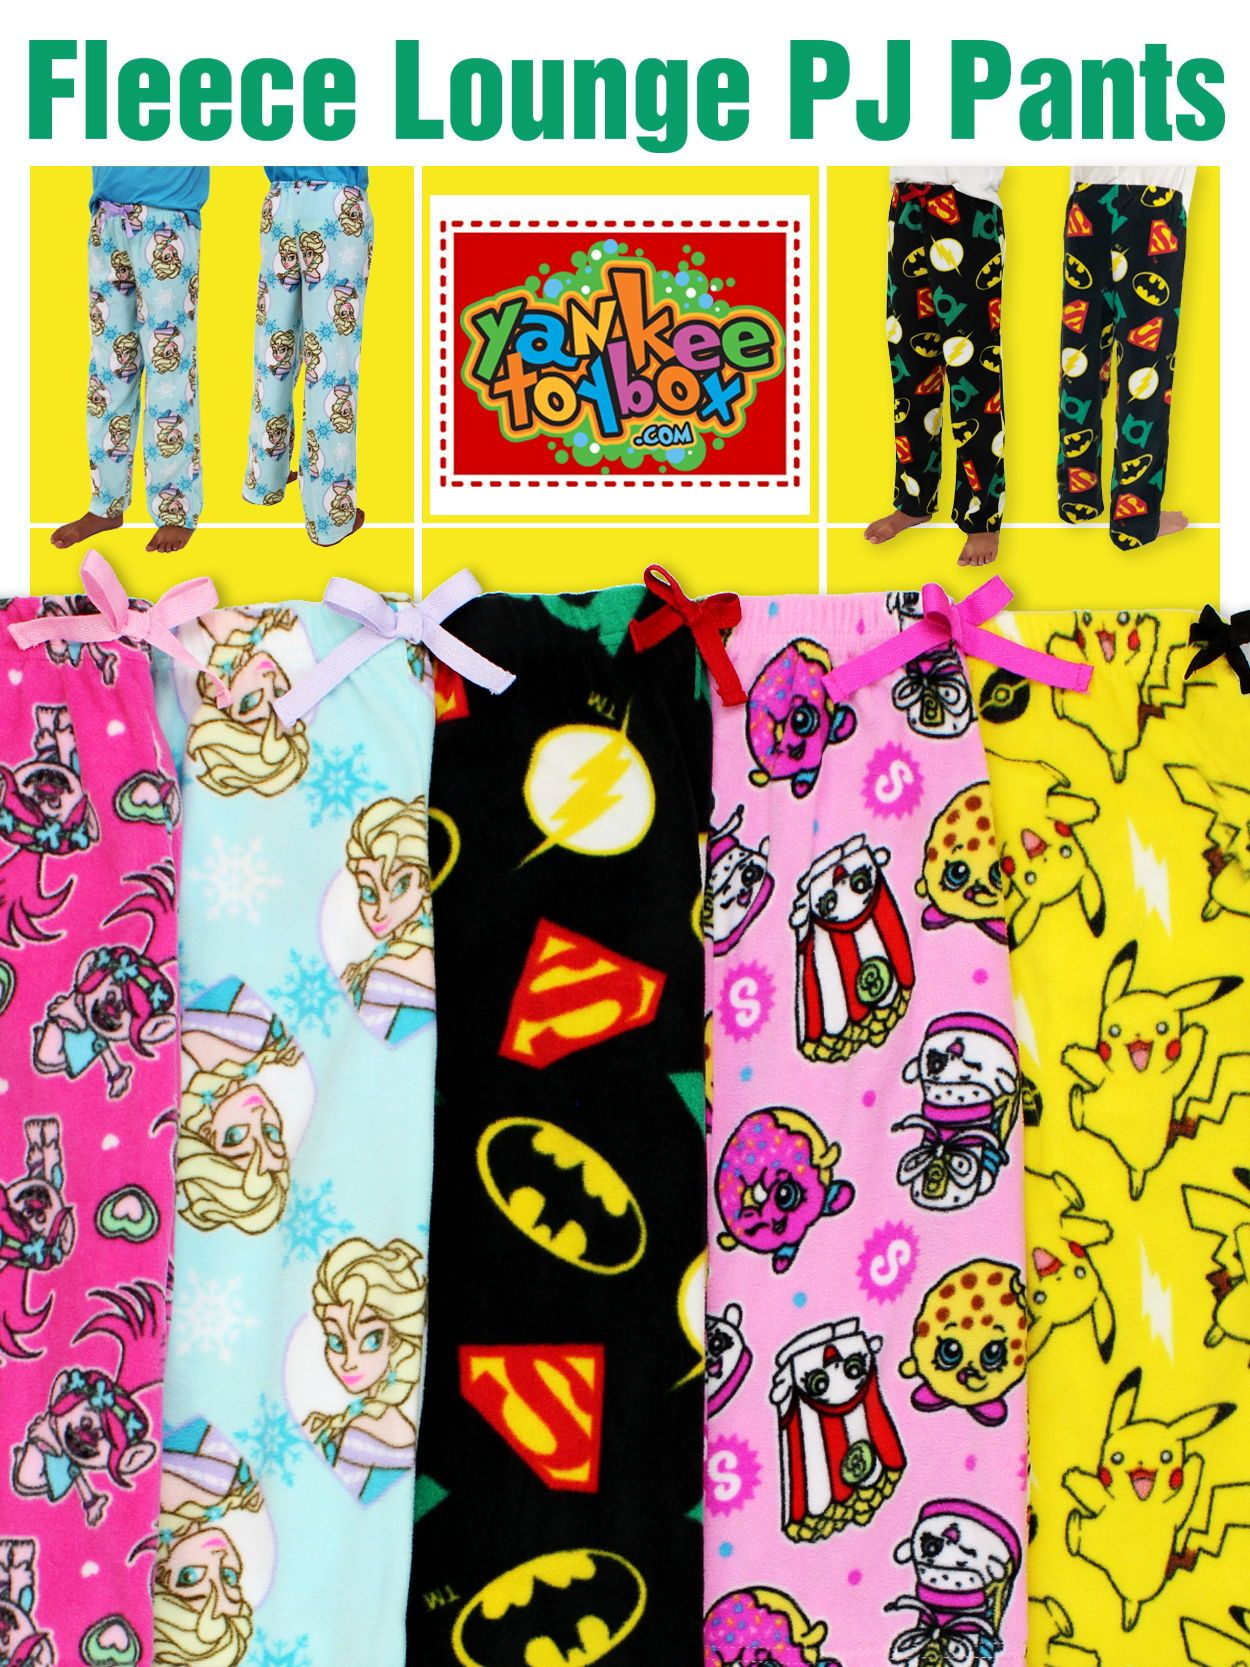 091585a0d4 Get ready for adventure with any of these awesome girls and boys plush  fleece pajama pants